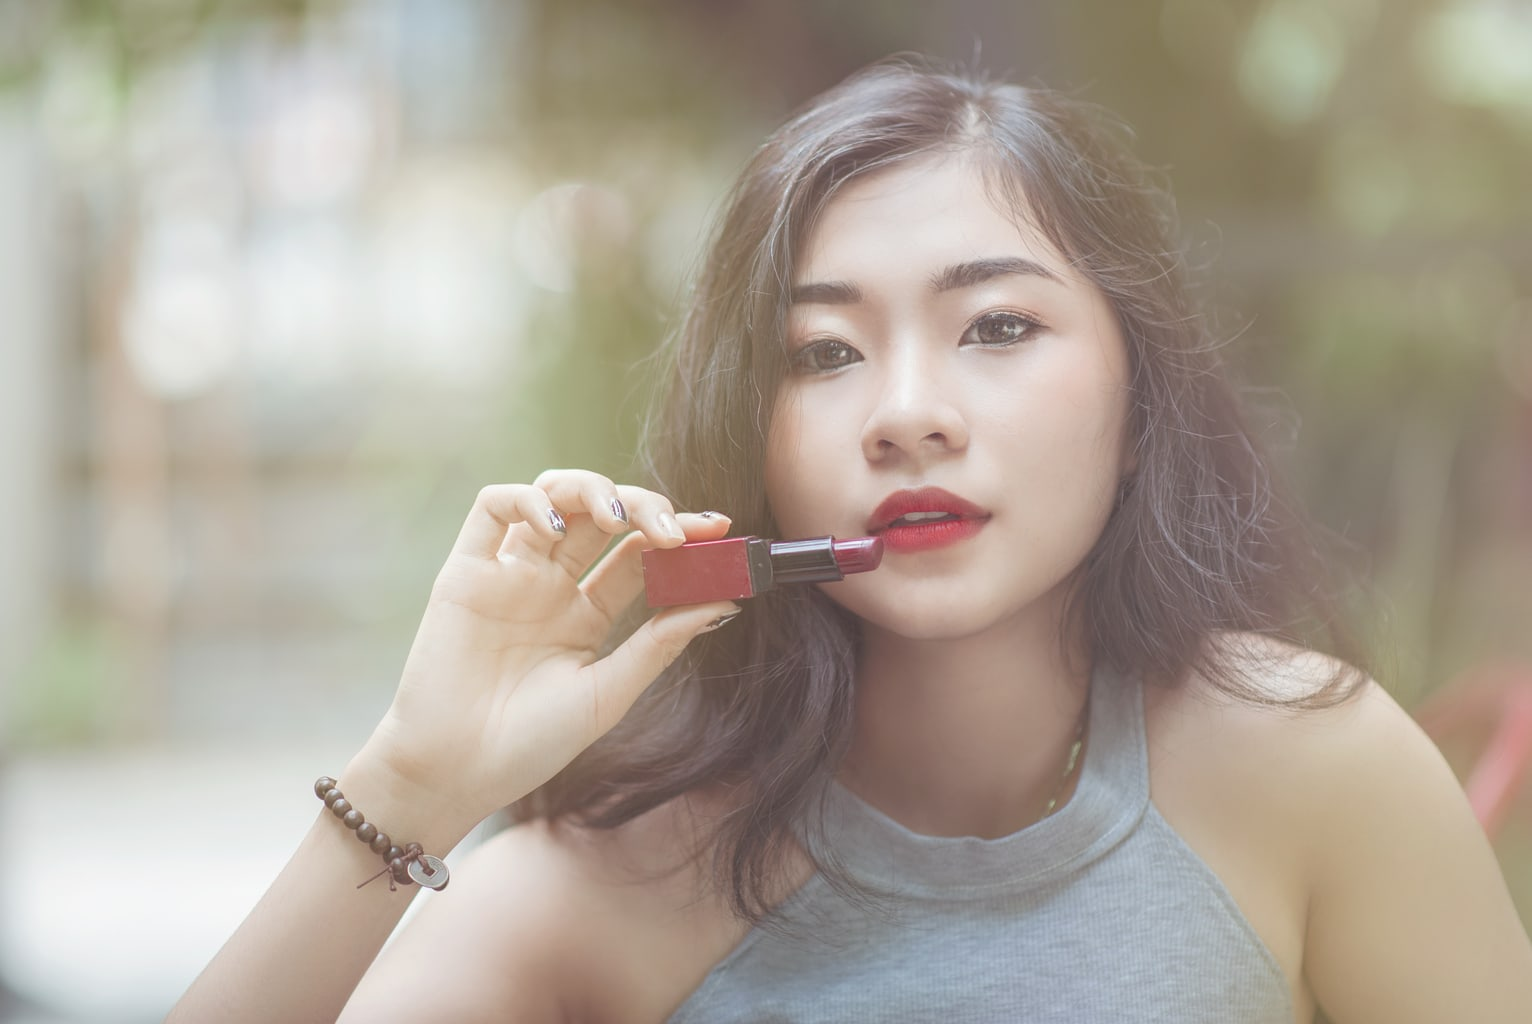 Girl holding a lipstick up to her mouth: Day to night makeup guide for students